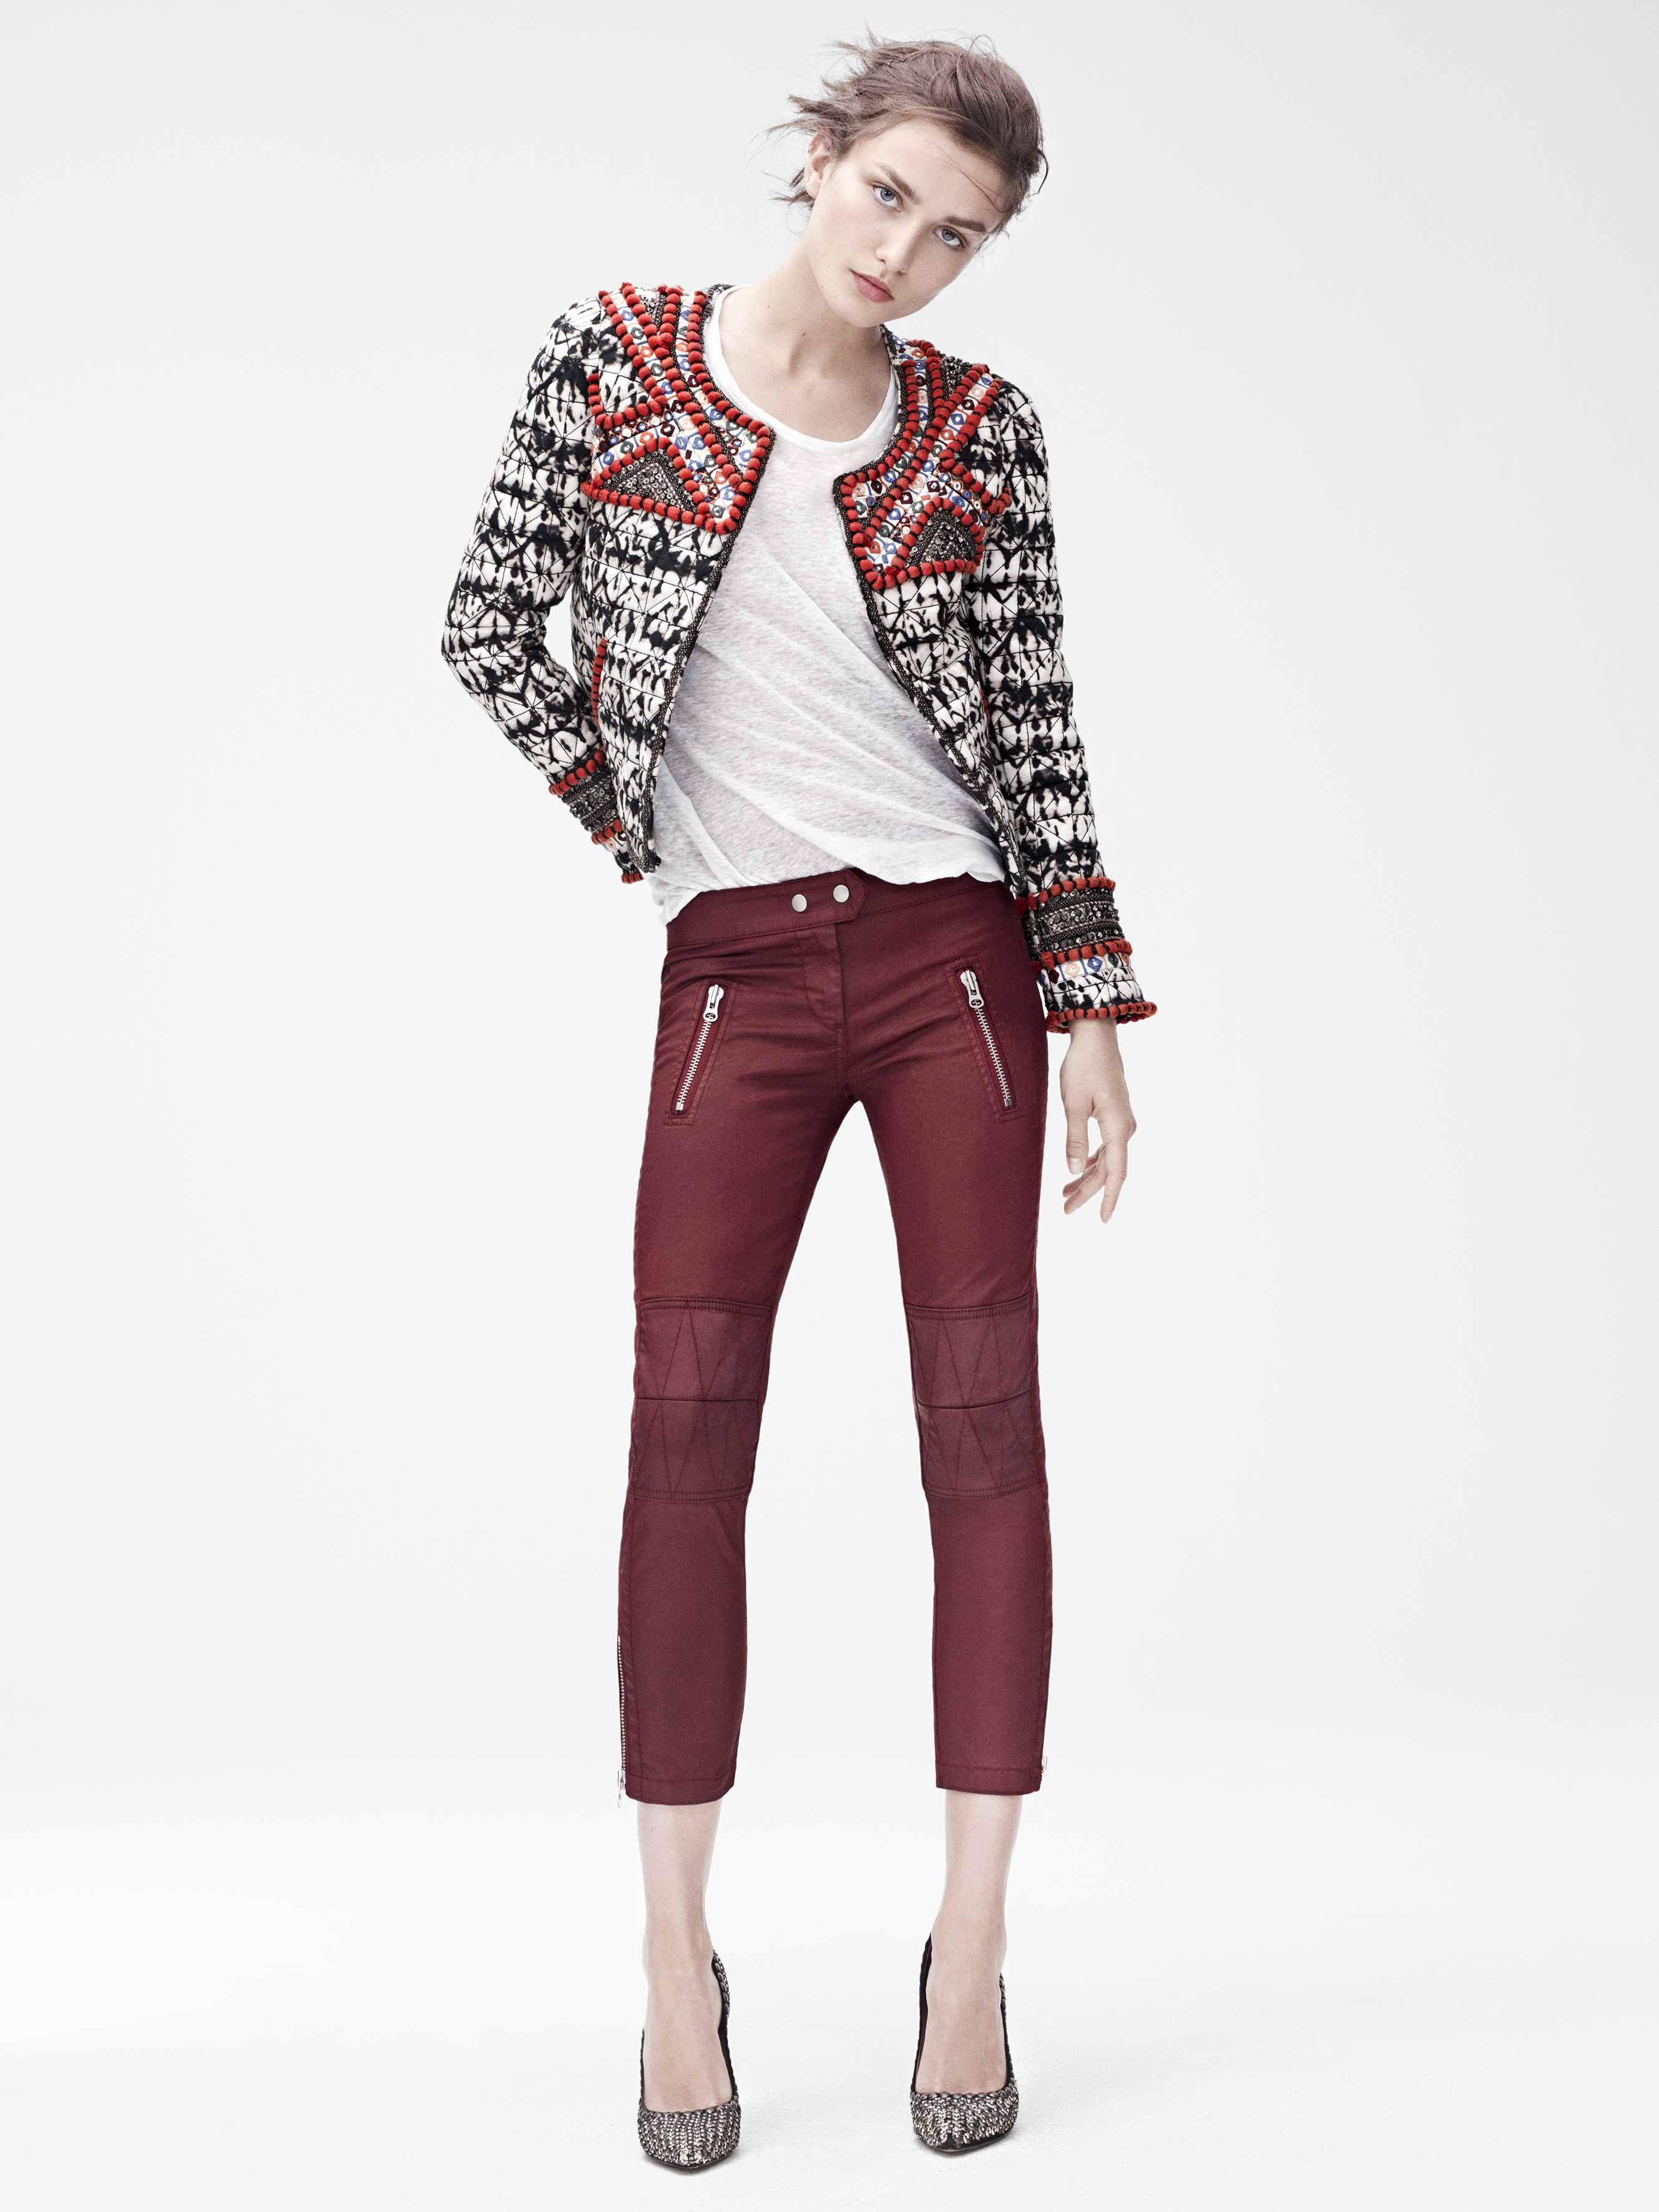 Top picks from the Isabel Marant pour H&M collection